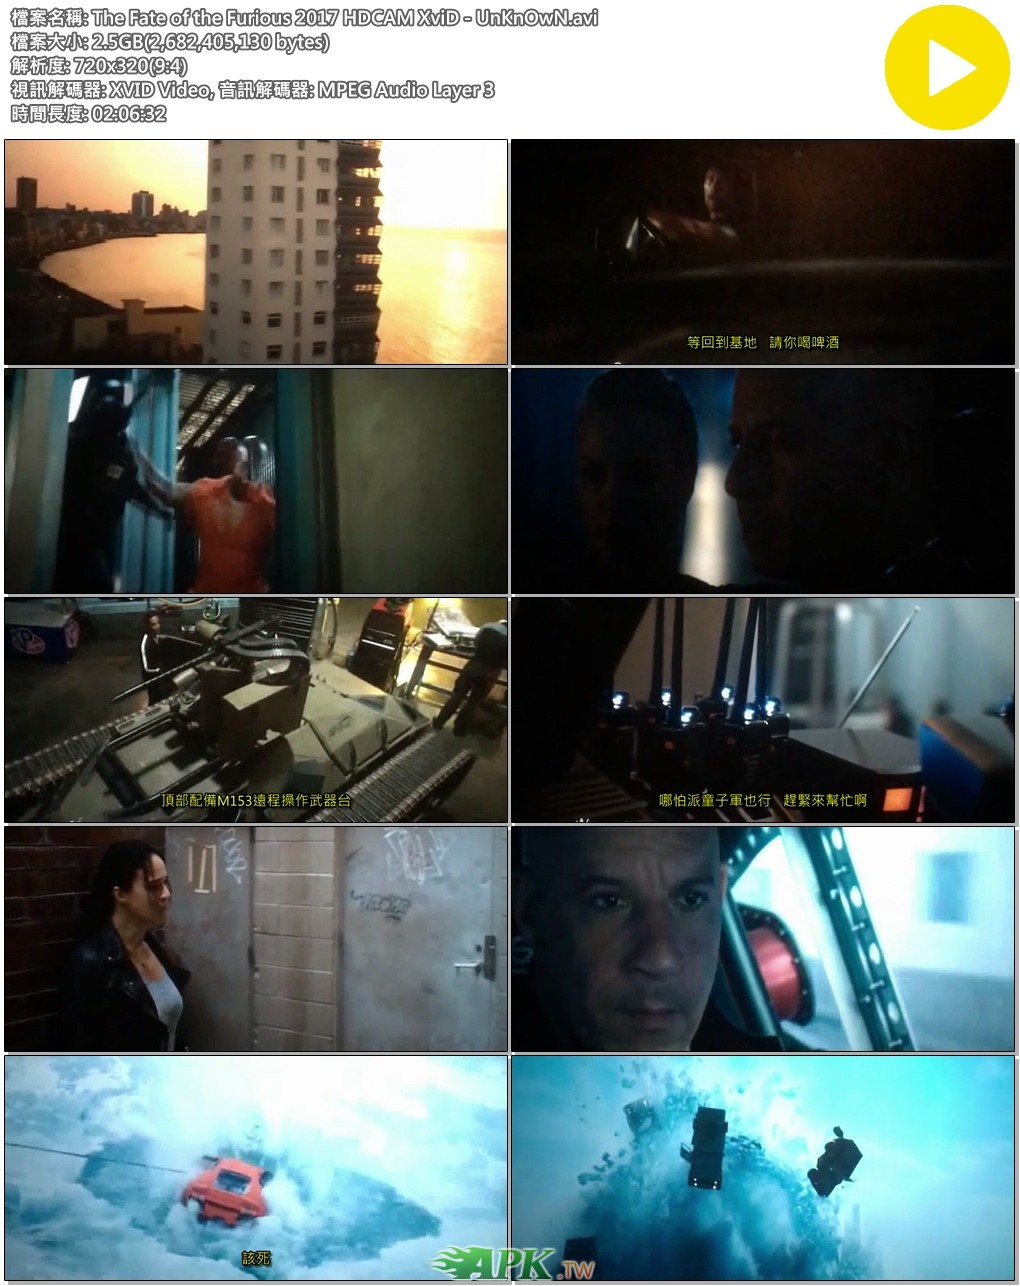 The Fate of the Furious 2017 HDCAM XviD - UnKnOwN.jpg